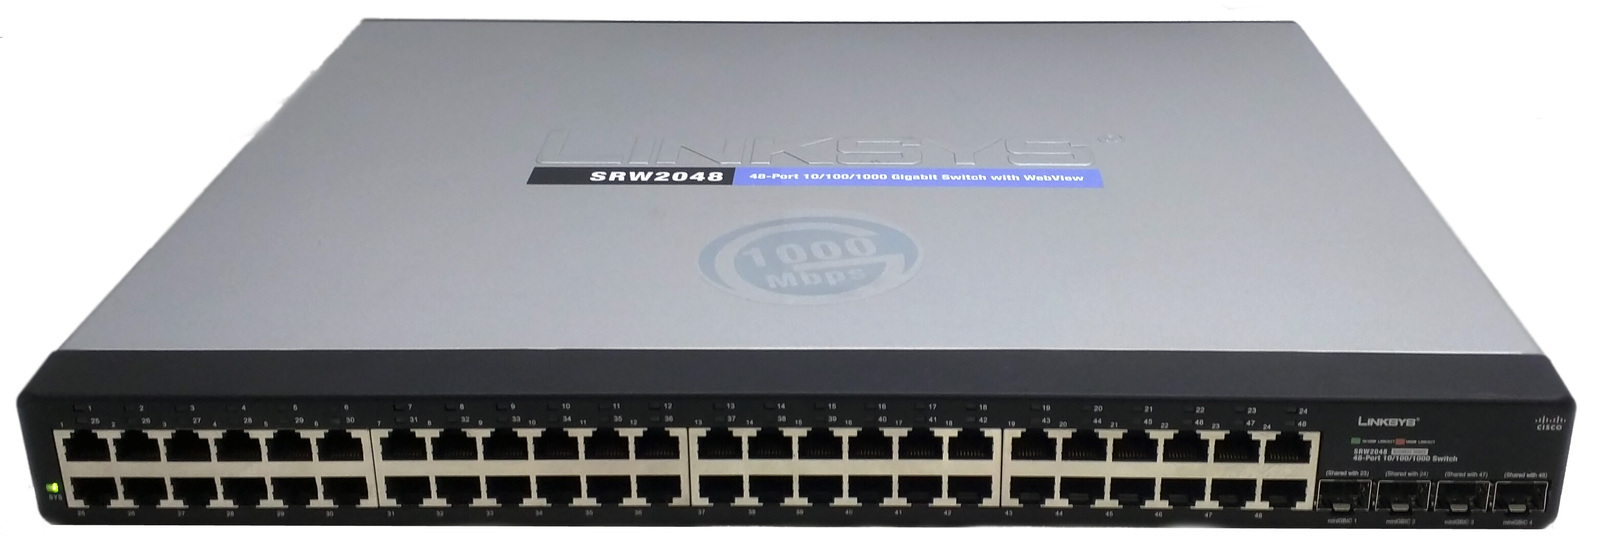 Cisco srw2048 001